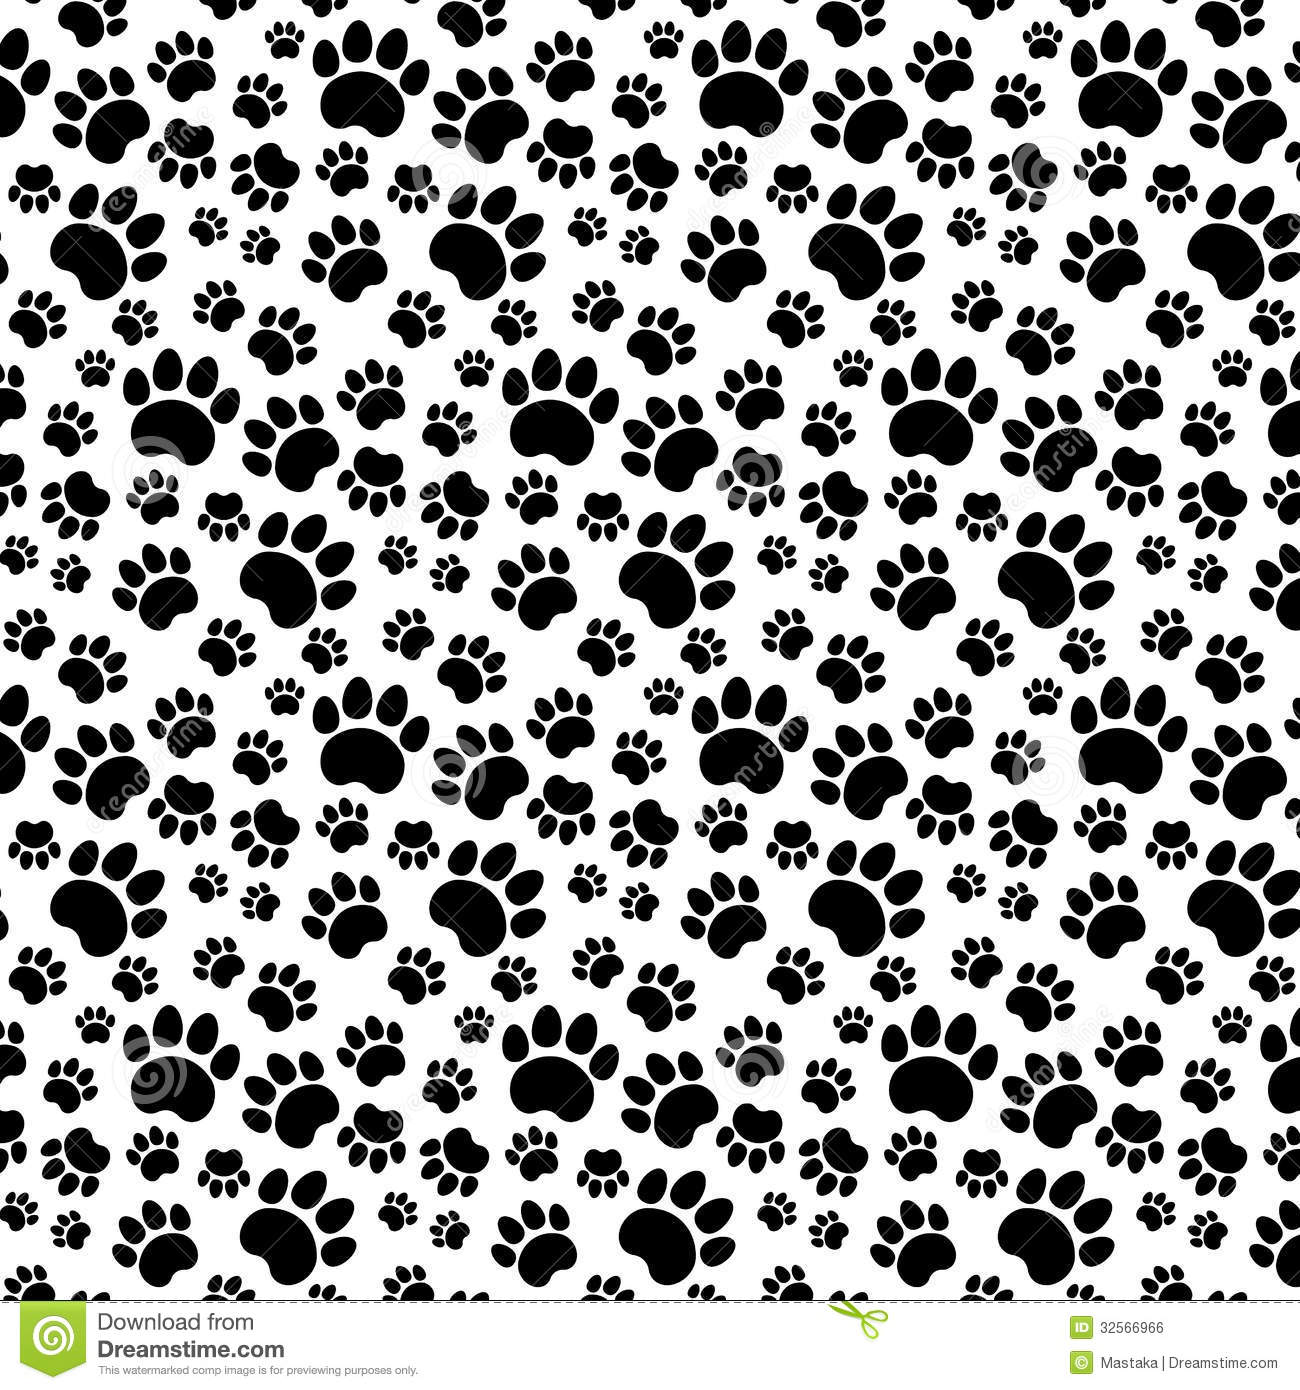 Horses together with 41217 White Blank Fabric Background Vector also View likewise Royalty Free Stock Image Traces Cat Textile Pattern Vector Seamless Image32566966 furthermore Royalty Free Stock Photos Old Vintage Teddy Bear Antique Toys Attic Image23695968. on abstract animal fabric